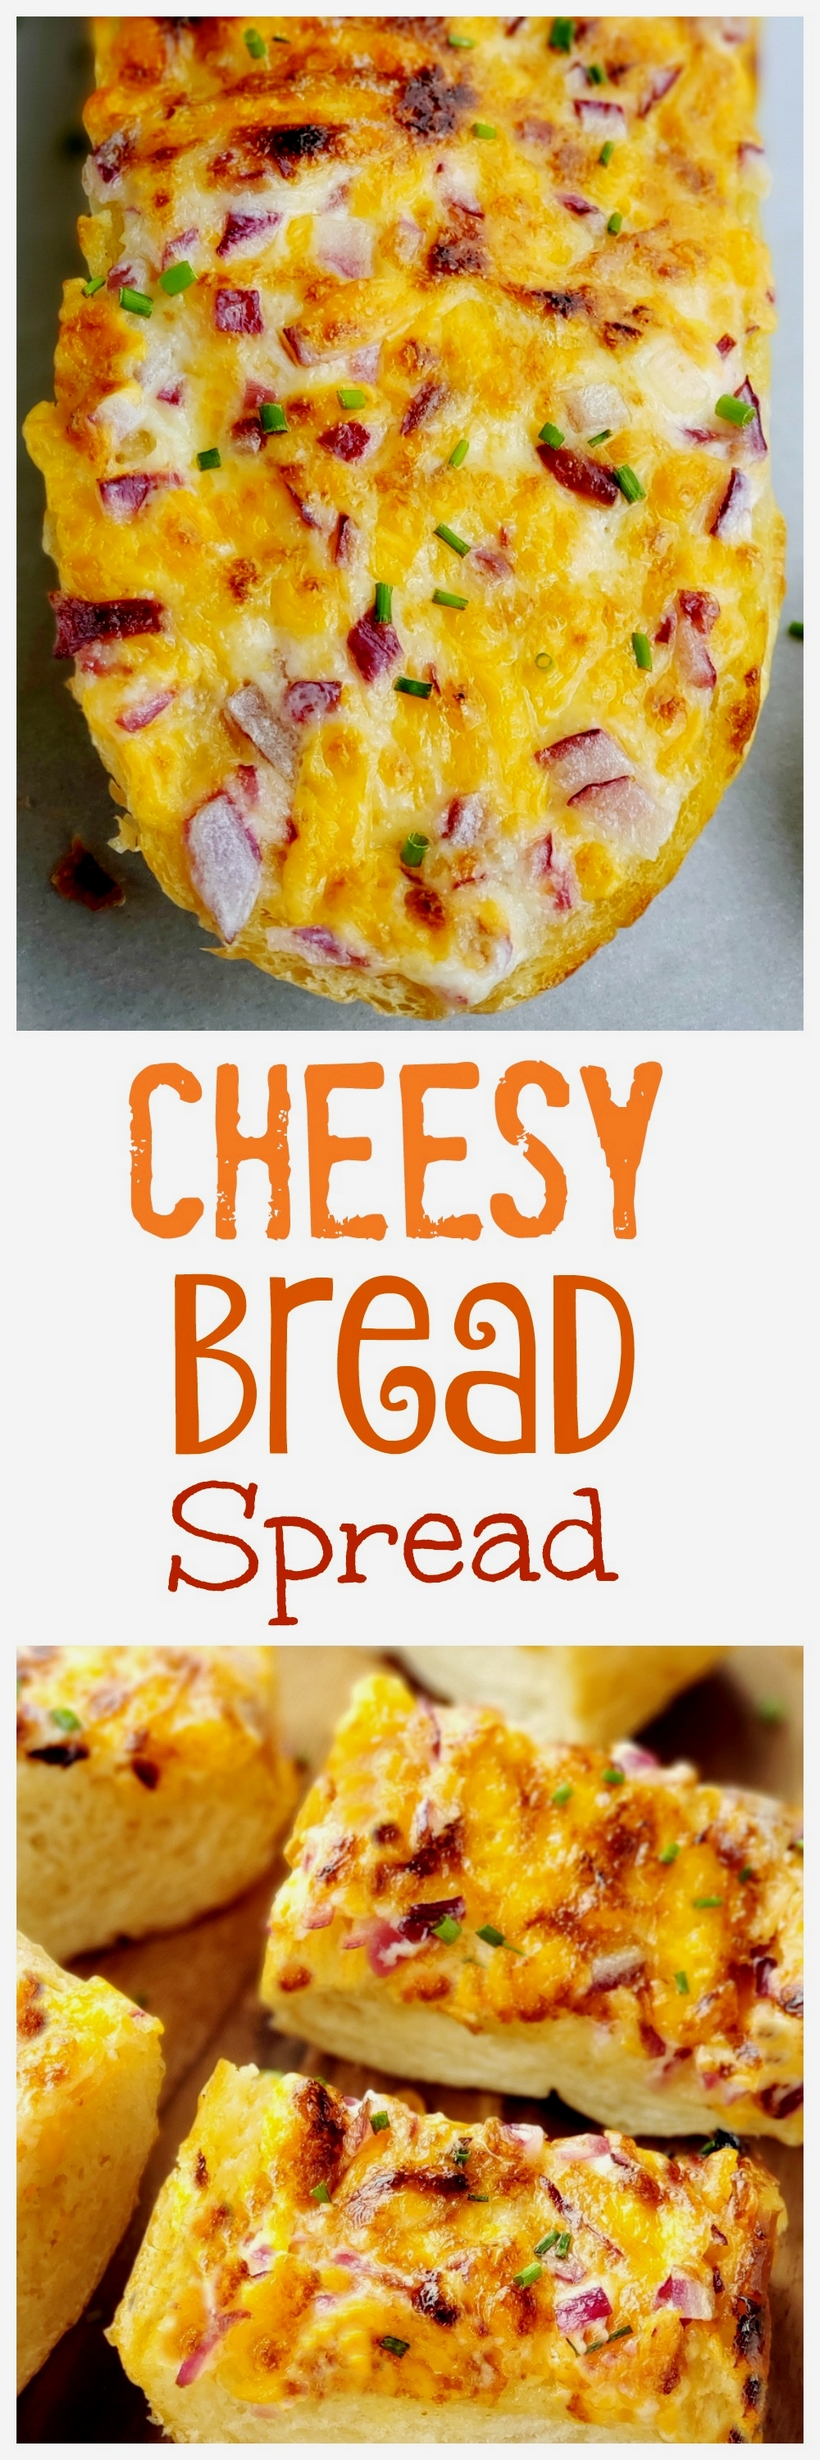 Cheesy Bread Spread will transform your regular loaf of bread into a mouthwatering sensation. Serve this bread with pasta dishes or next to a freshly made salad.  via @cmpollak1